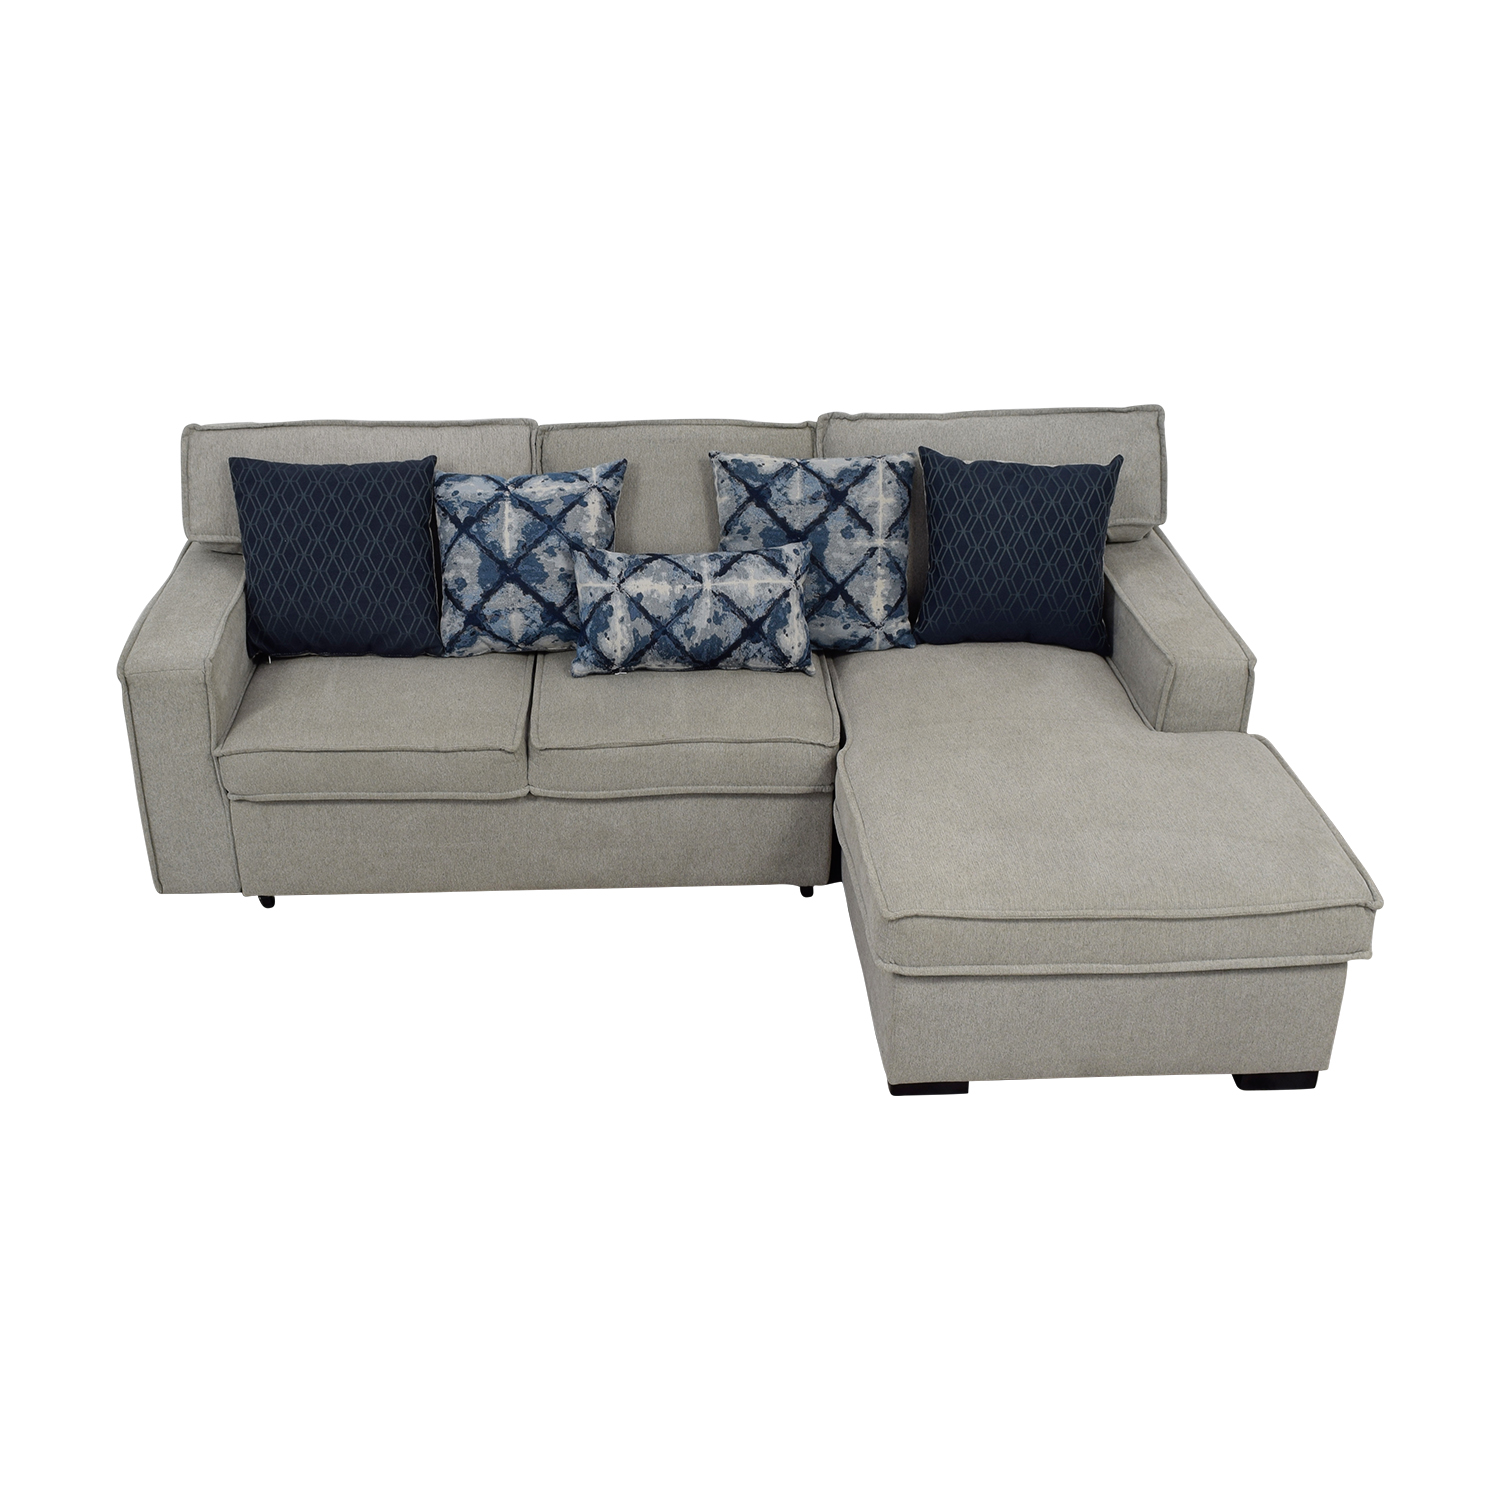 shop Bob's Furniture Gray Chaise Storage Sectional Bob's Furniture